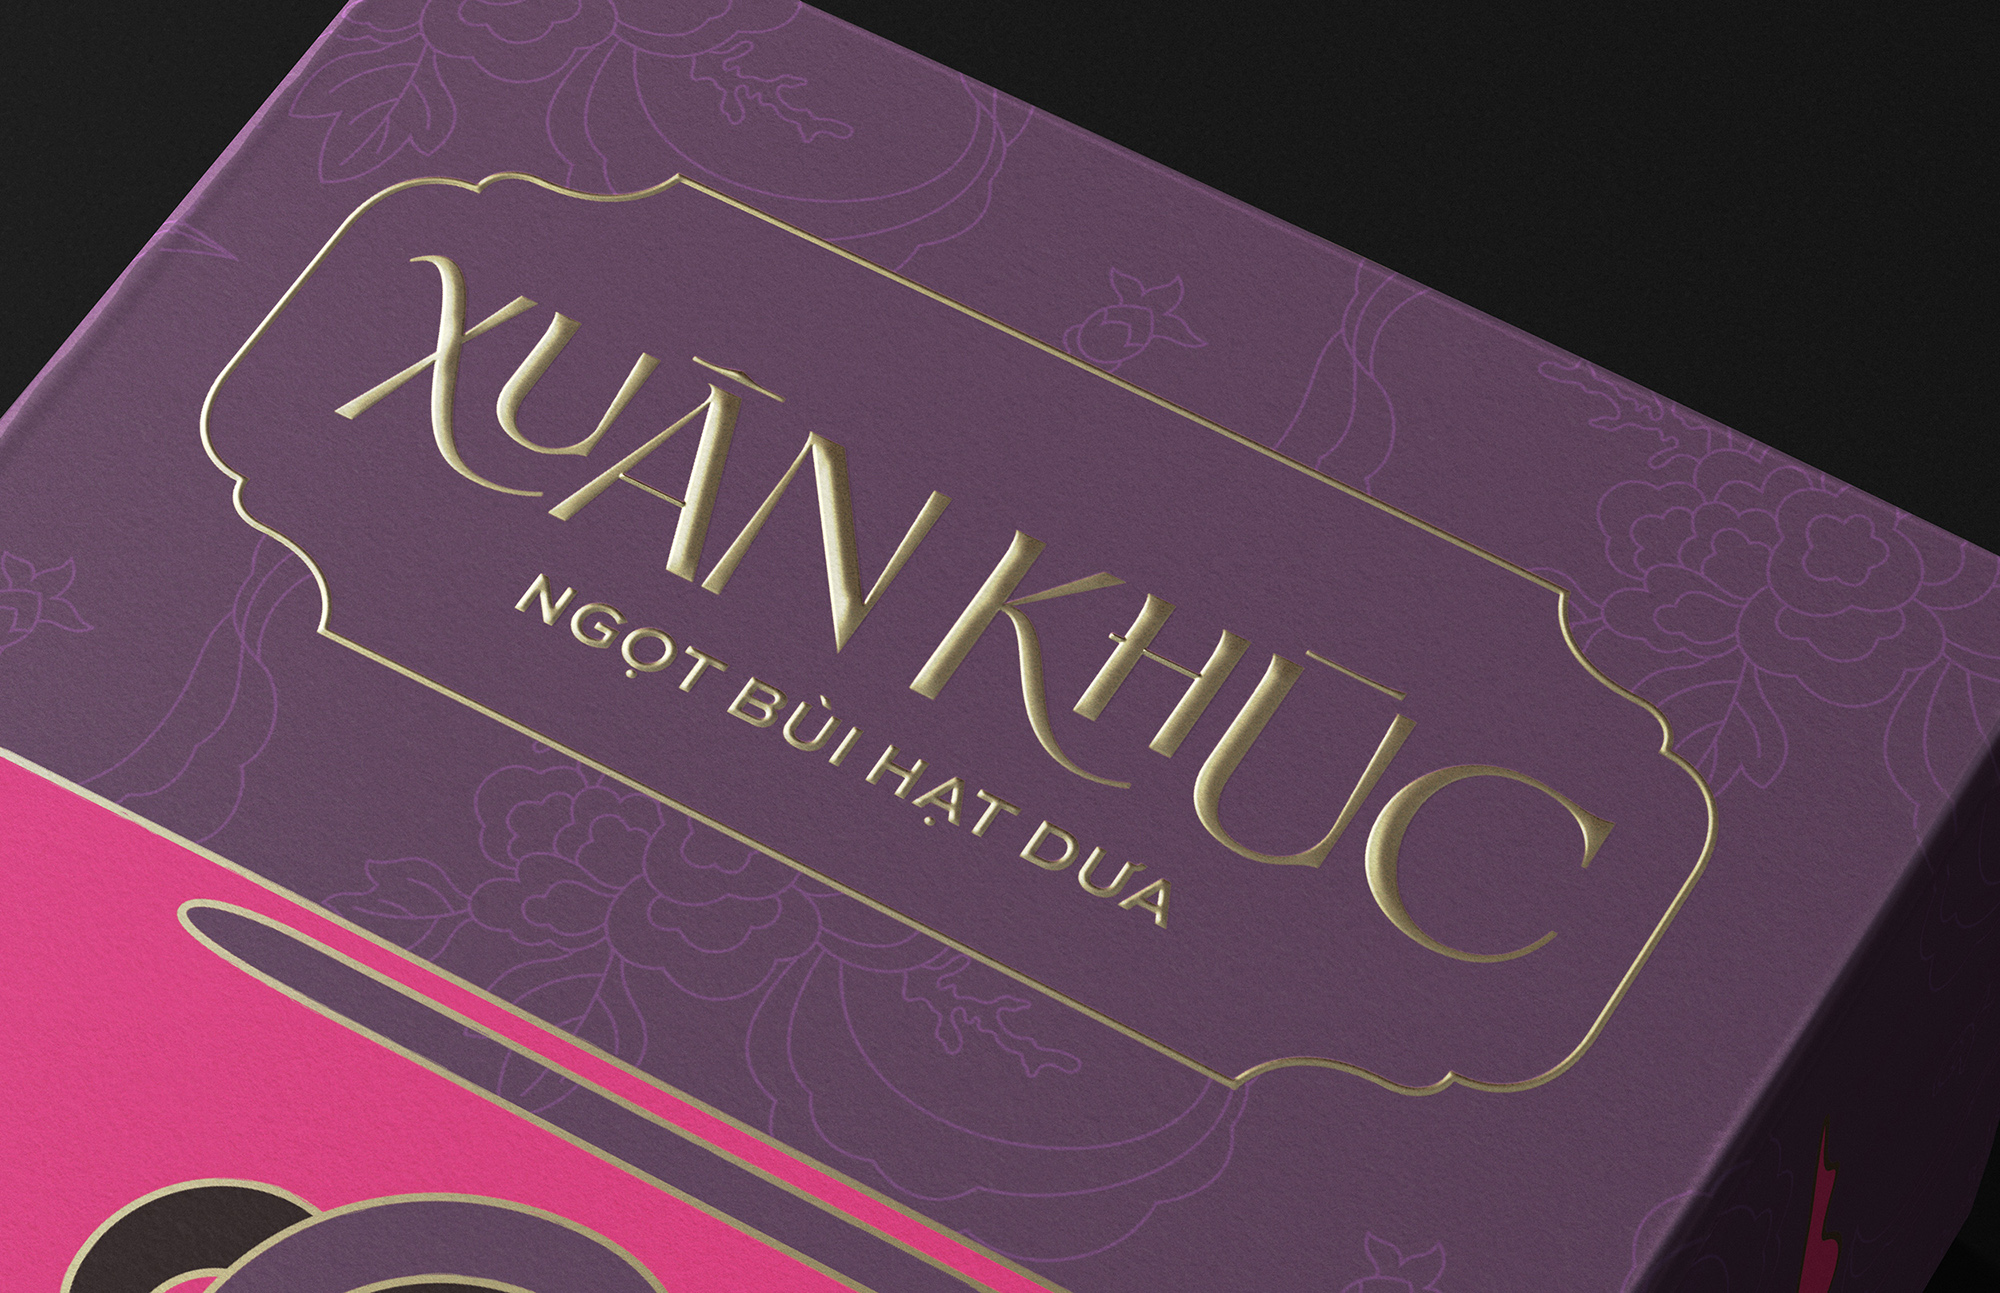 Xuân Khúc Vietnam Contemporary Packaging Design / World Brand Design Society